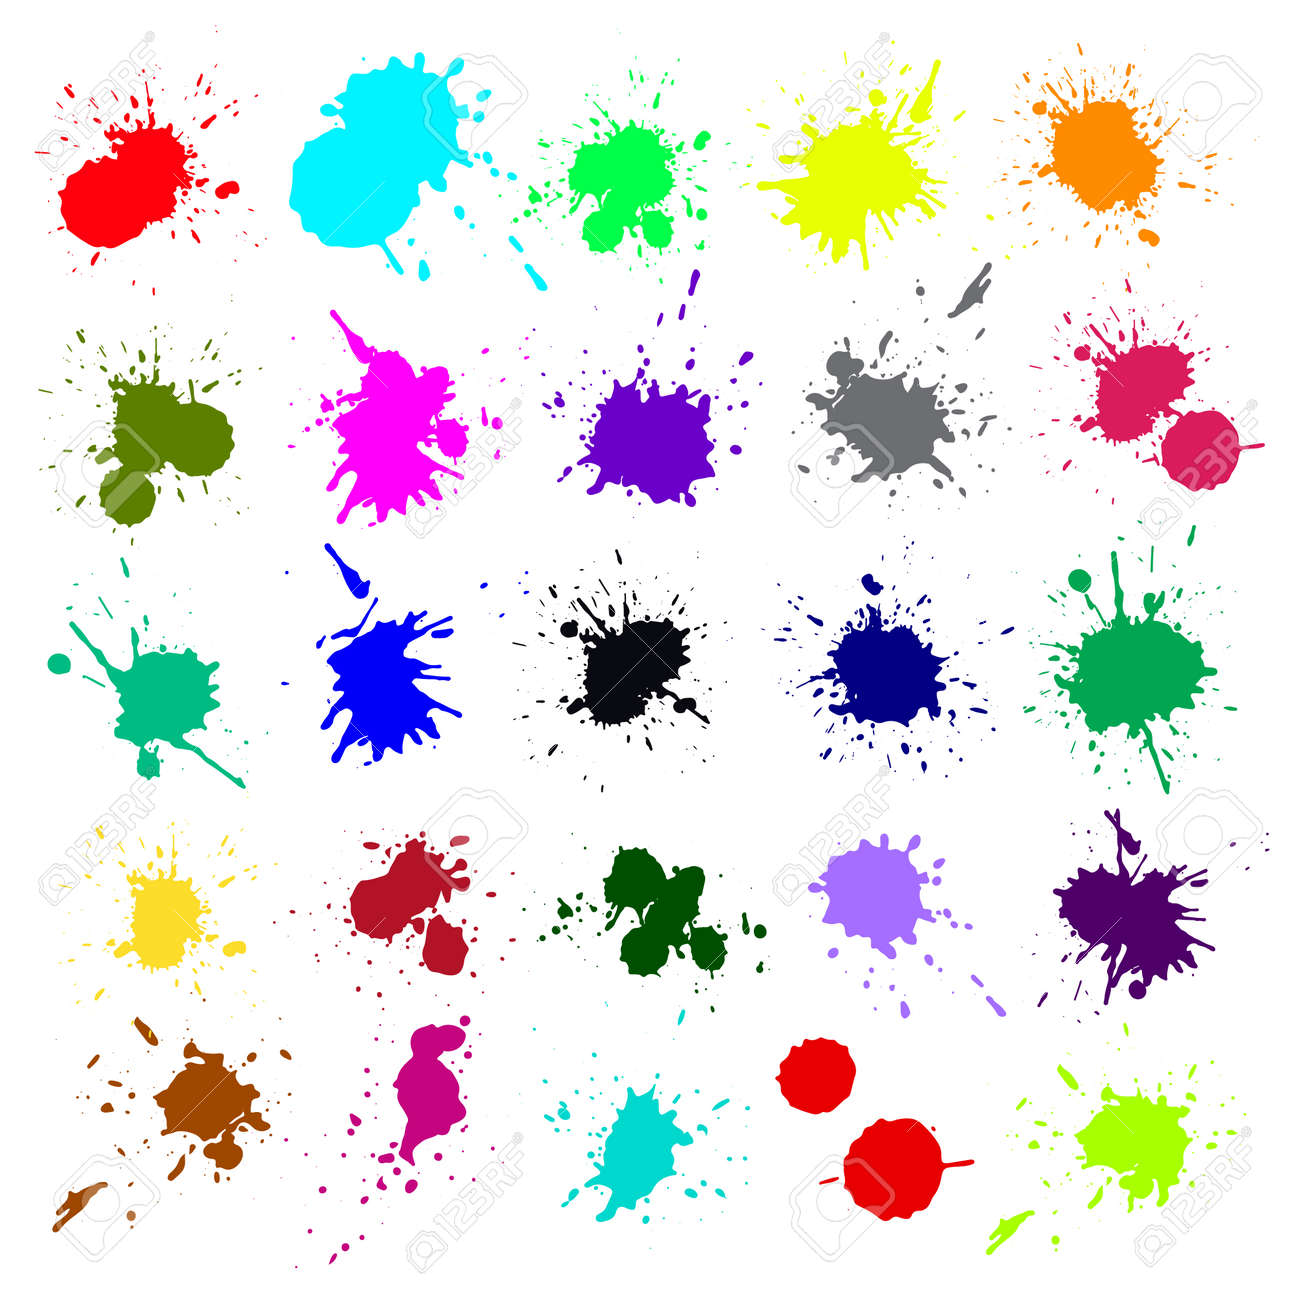 Grunge splatters. Abstract background. Grunge text banners. Color ink splashes. - 158330506